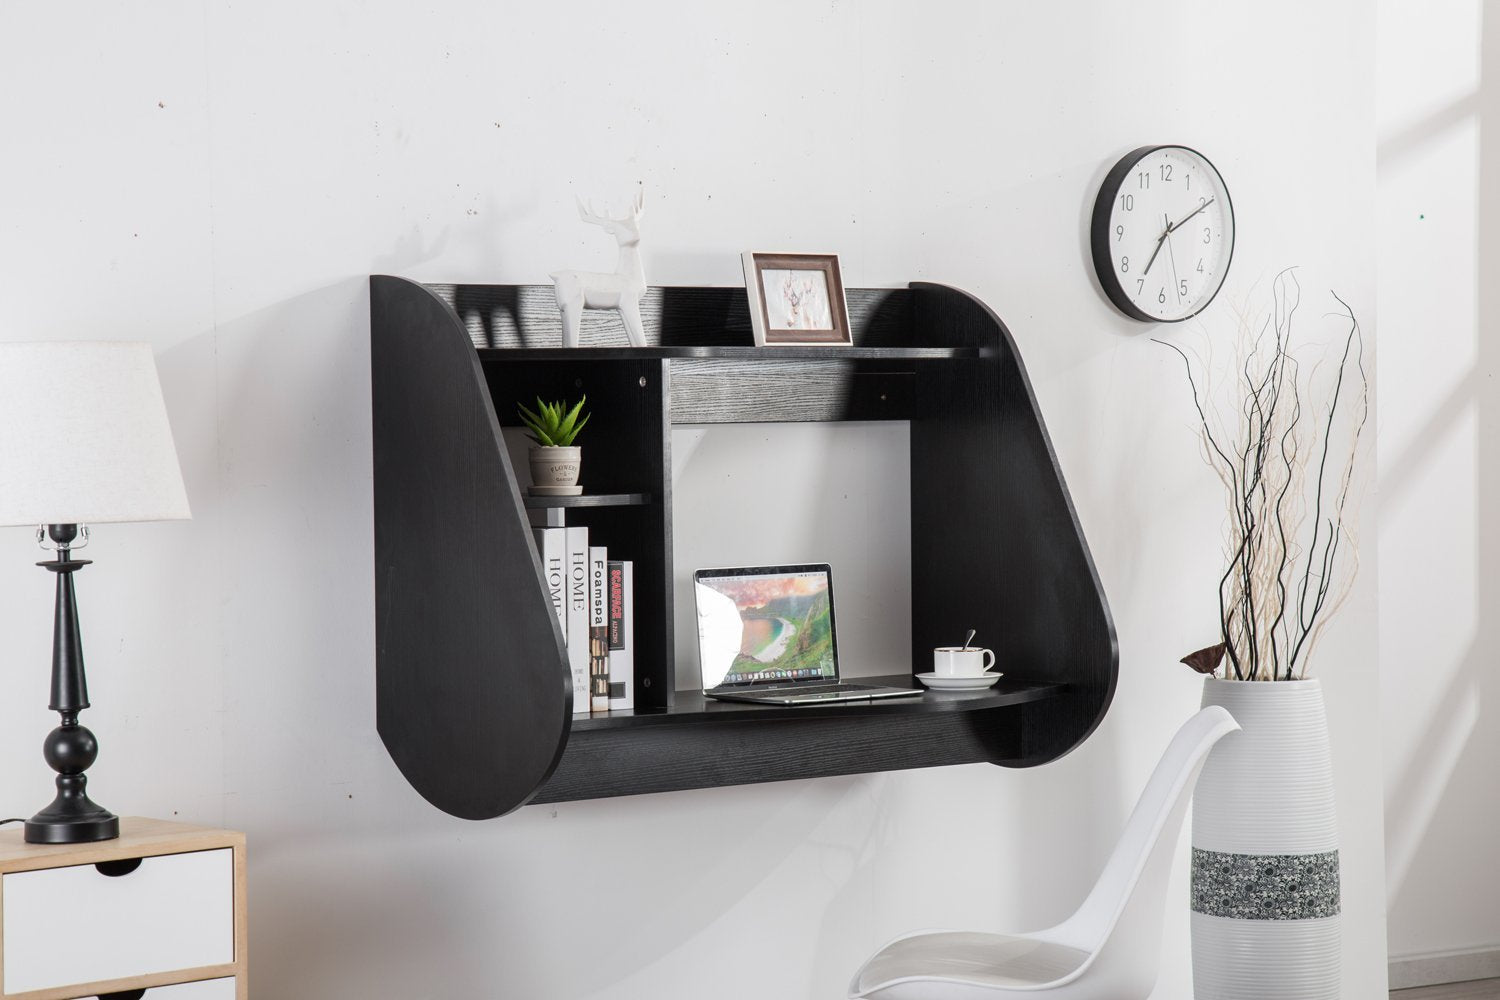 Mcombo Floating Wall Mount Laptop Stand Home Office Dorm Bedroom Computer Desk 1112